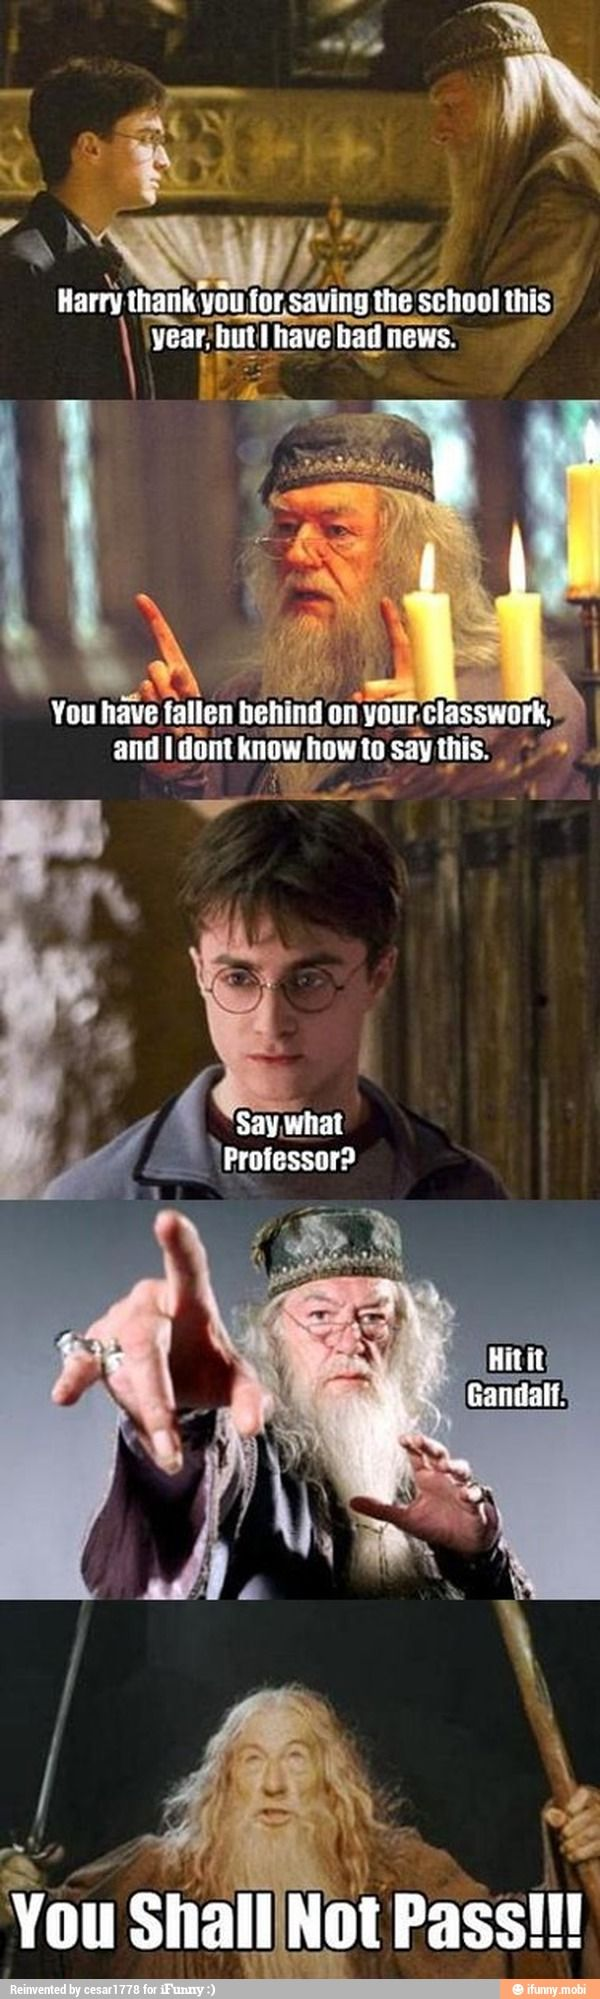 Bad news for Harry / iFunny :)